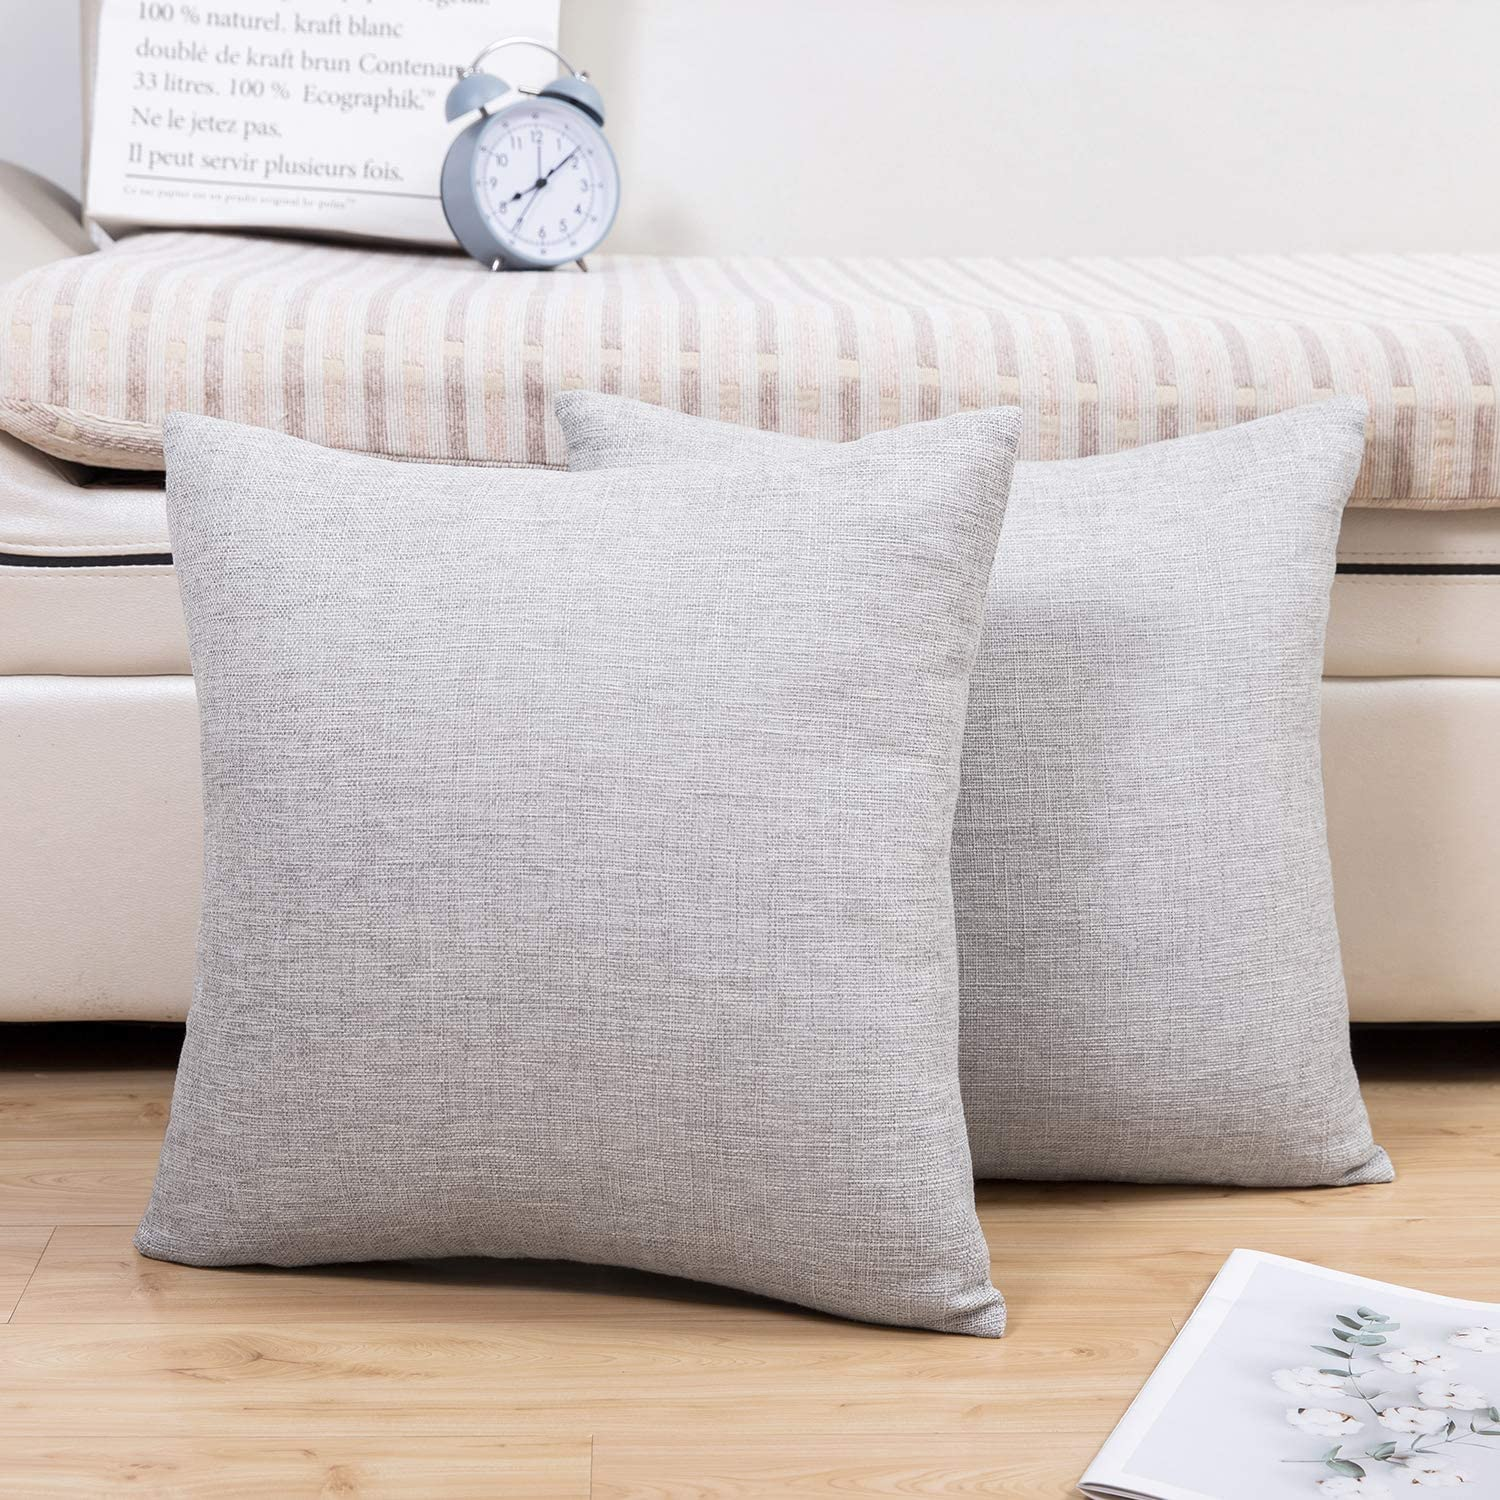 Jepeak Comfy Throw Pillow Covers Cushion Cases Pack of 2 Cotton Linen Farmhouse Modern Decorative Solid Square Pillow Cases for Couch Sofa Bed (Light Grey, 22 x 22 Inches)